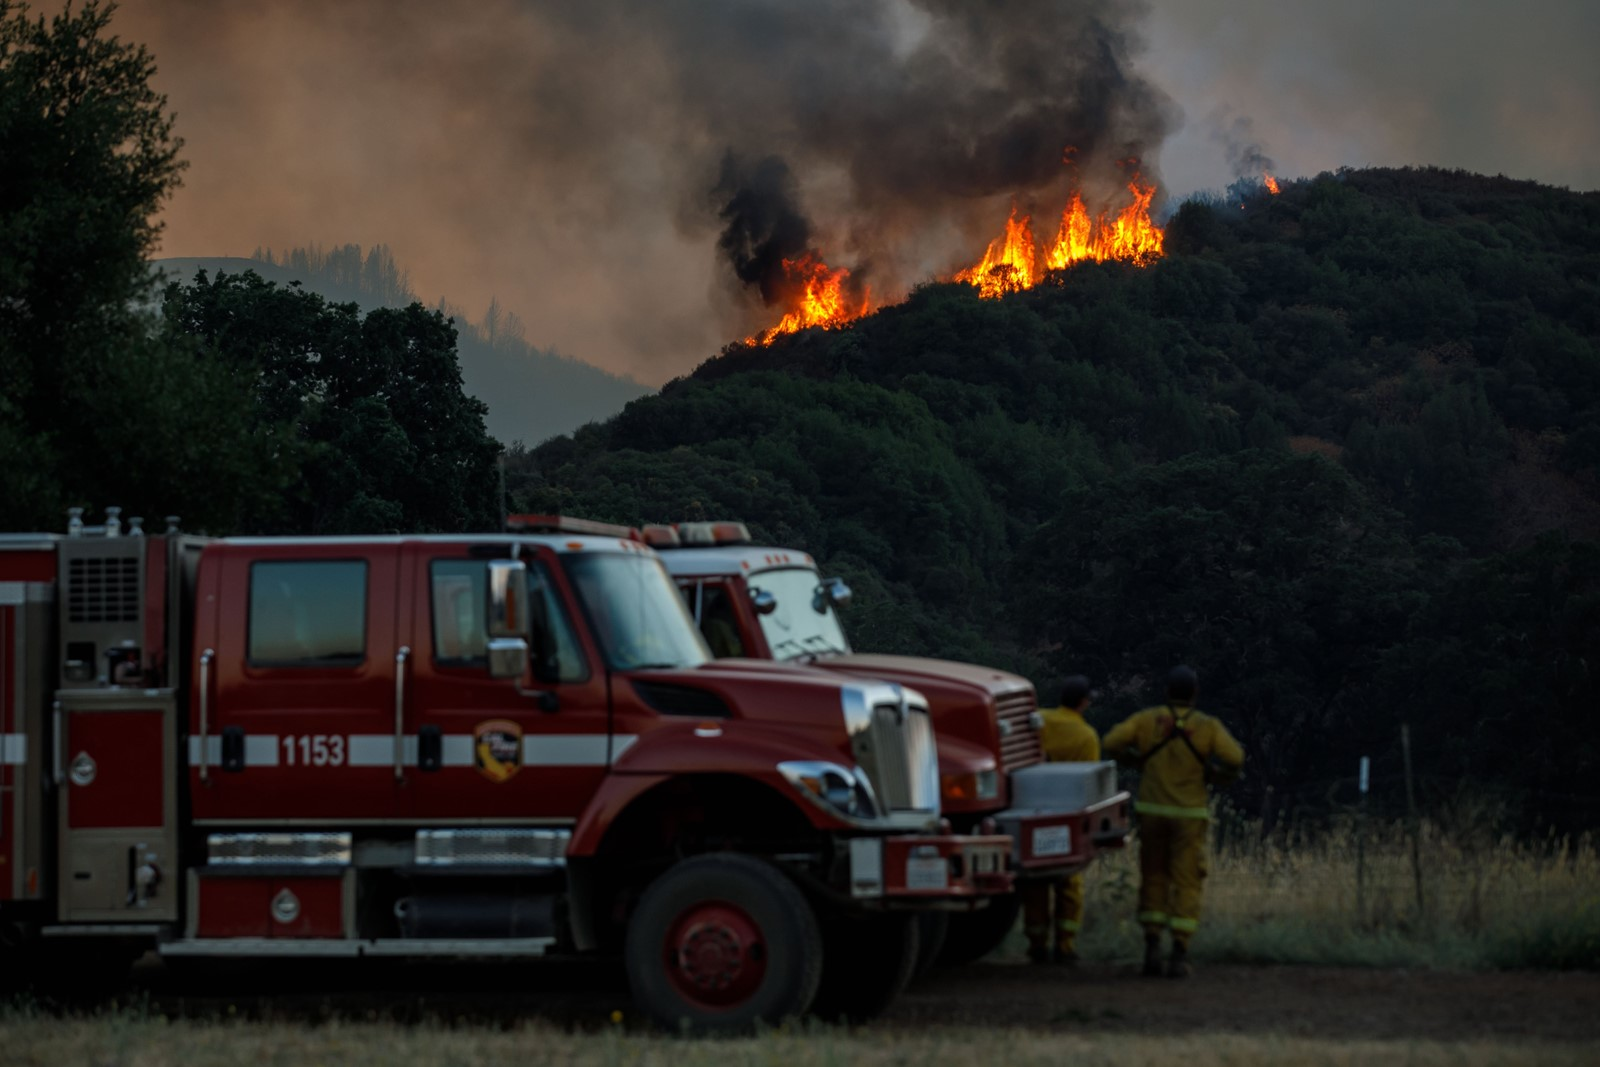 Firefighters monitor the progression of the River fire on Wednesday. Low humidity, heat and wind challenged crews, although containment increased on the southern Mendocino County blaze and another nearby. — Photograph: Marcus Yam/Los Angeles Times.